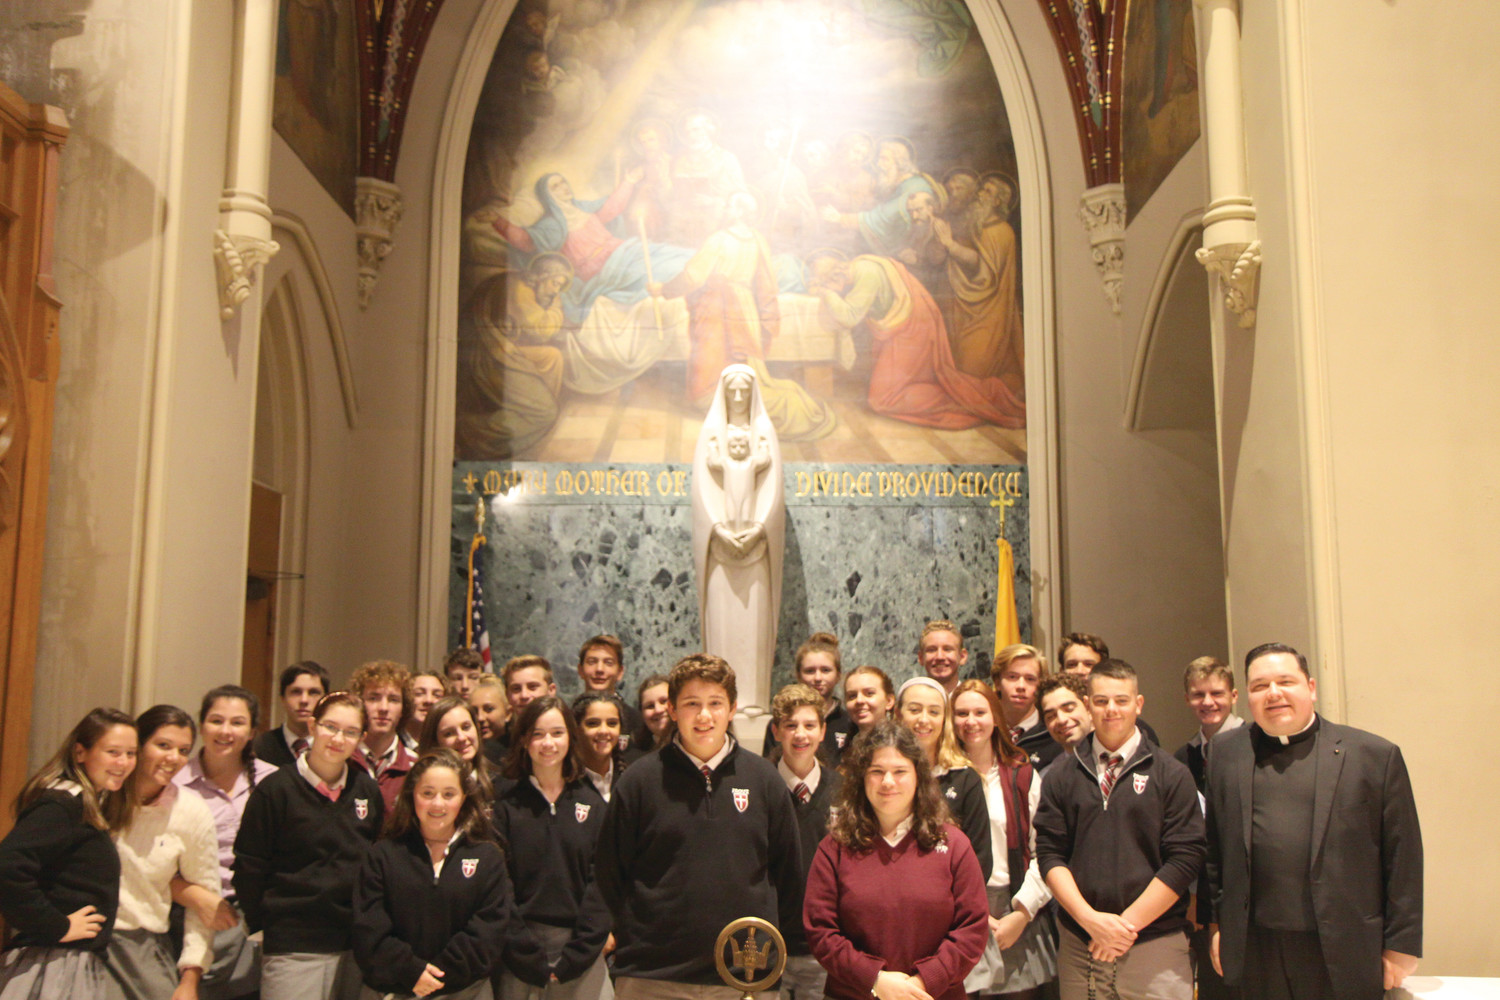 Students, along with Chaplain Father Joseph Upton, pose for a photo before a statue of Our Lady of Providence at the Cathedral of Saints Peter and Paul.